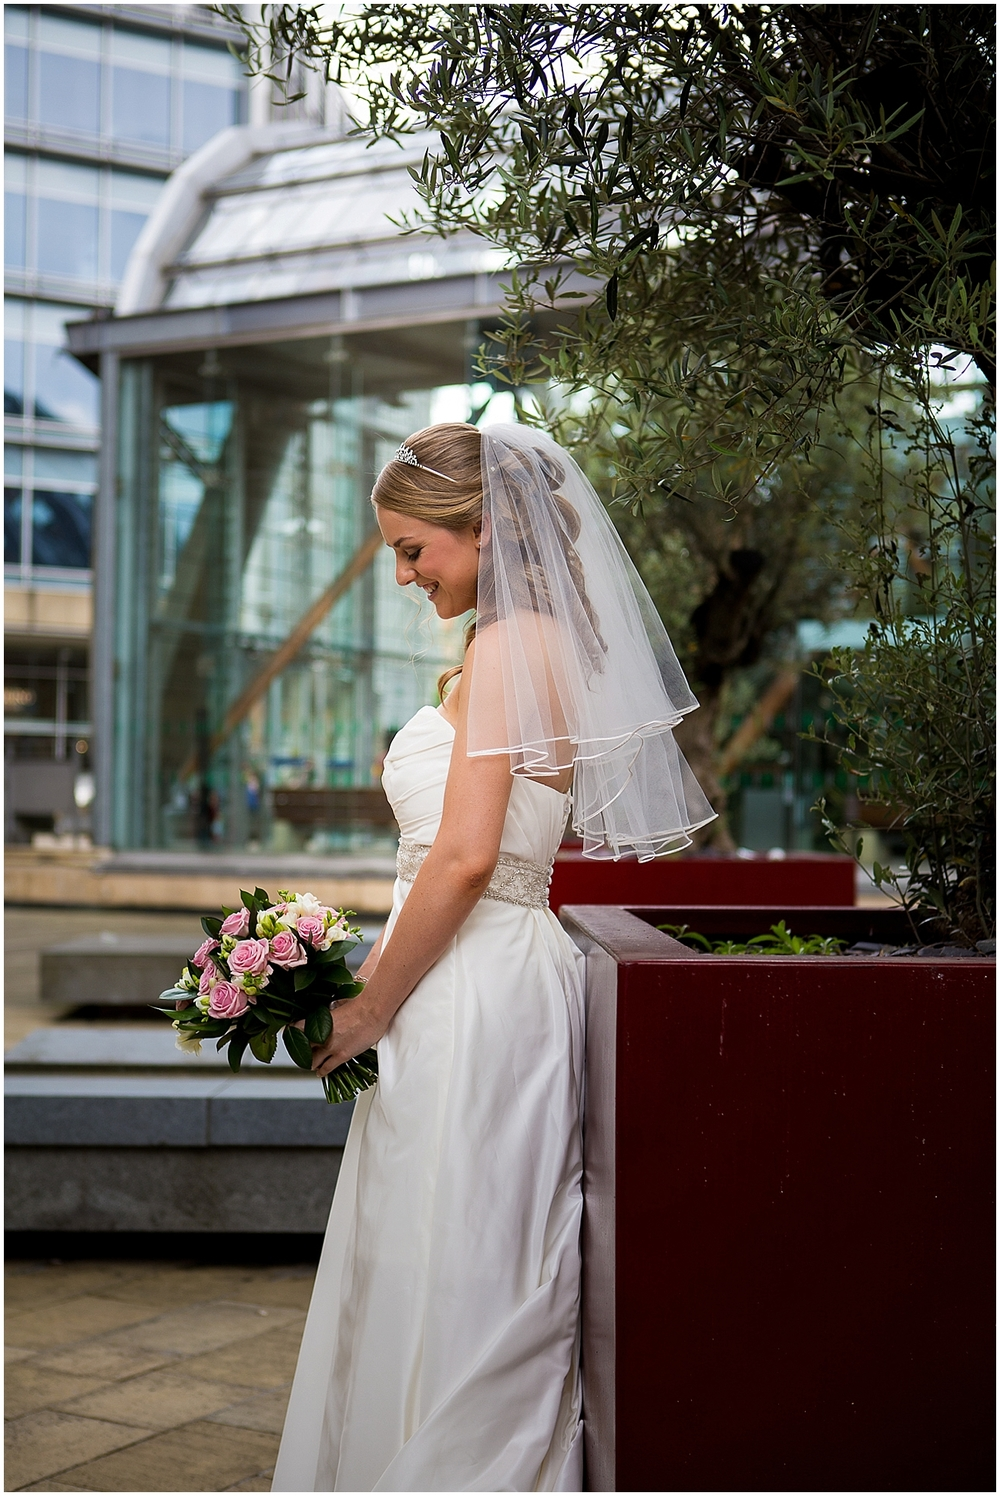 Beautiful bride outside winter gardens - Sheffield Wedding Photography